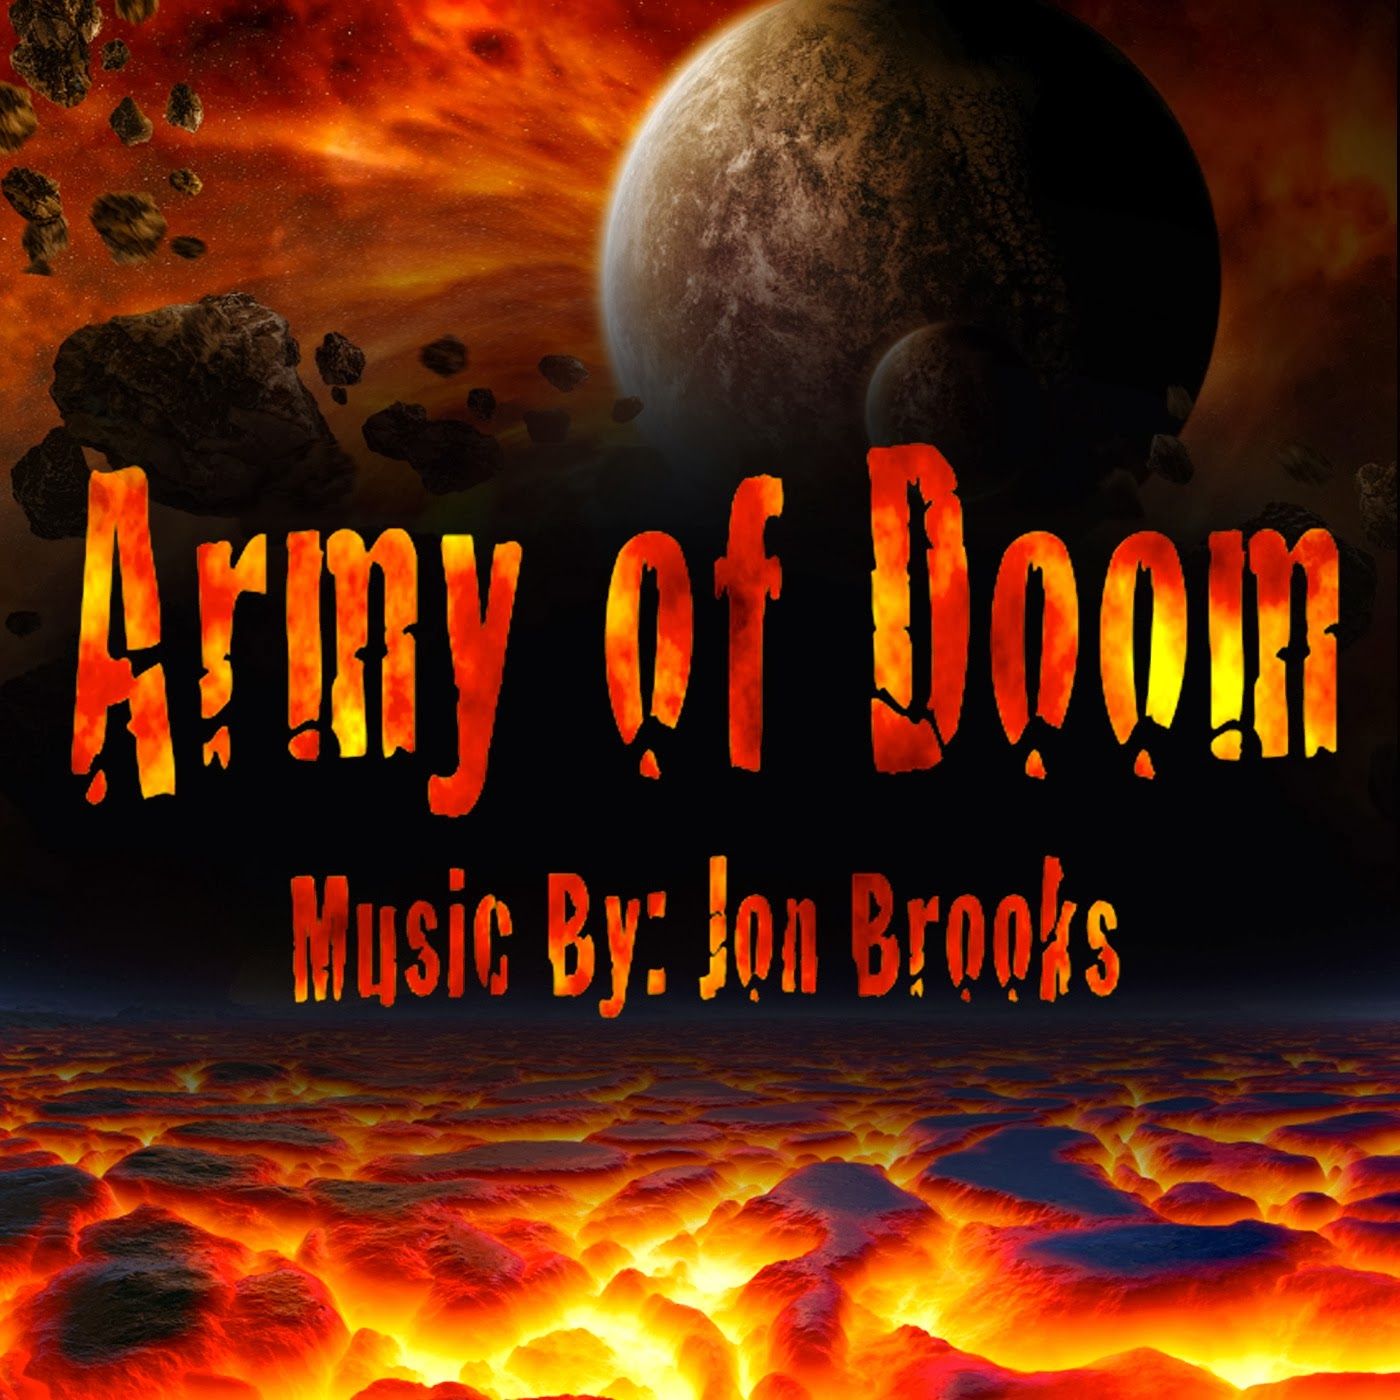 Jon Brooks - Music Production for Film, Television, Artists